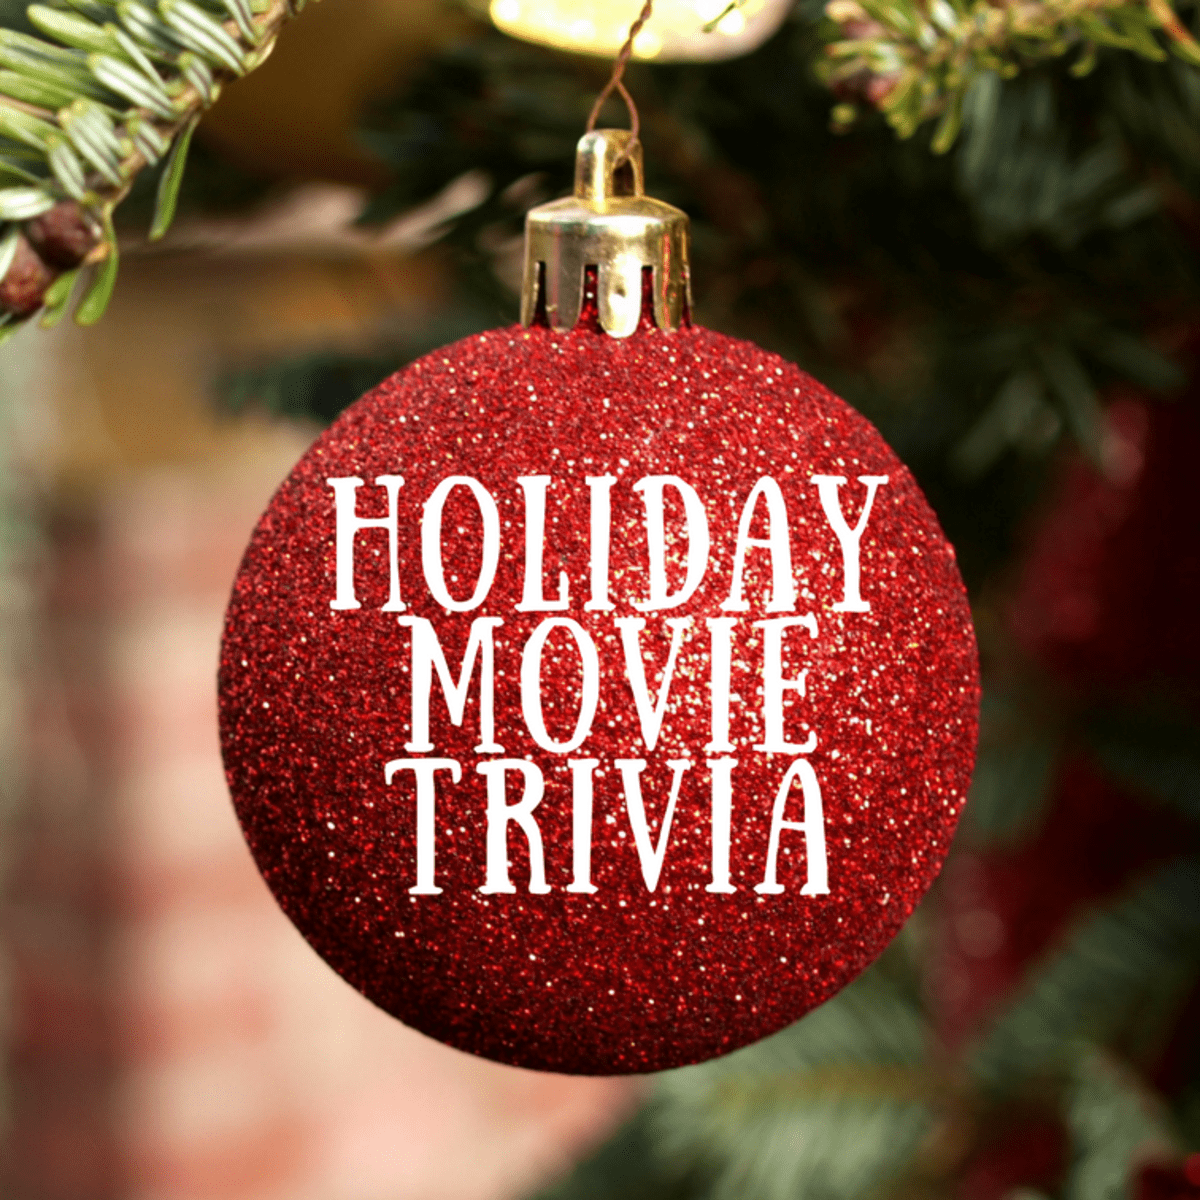 99 Christmas Movie Trivia Questions Answers Holidappy